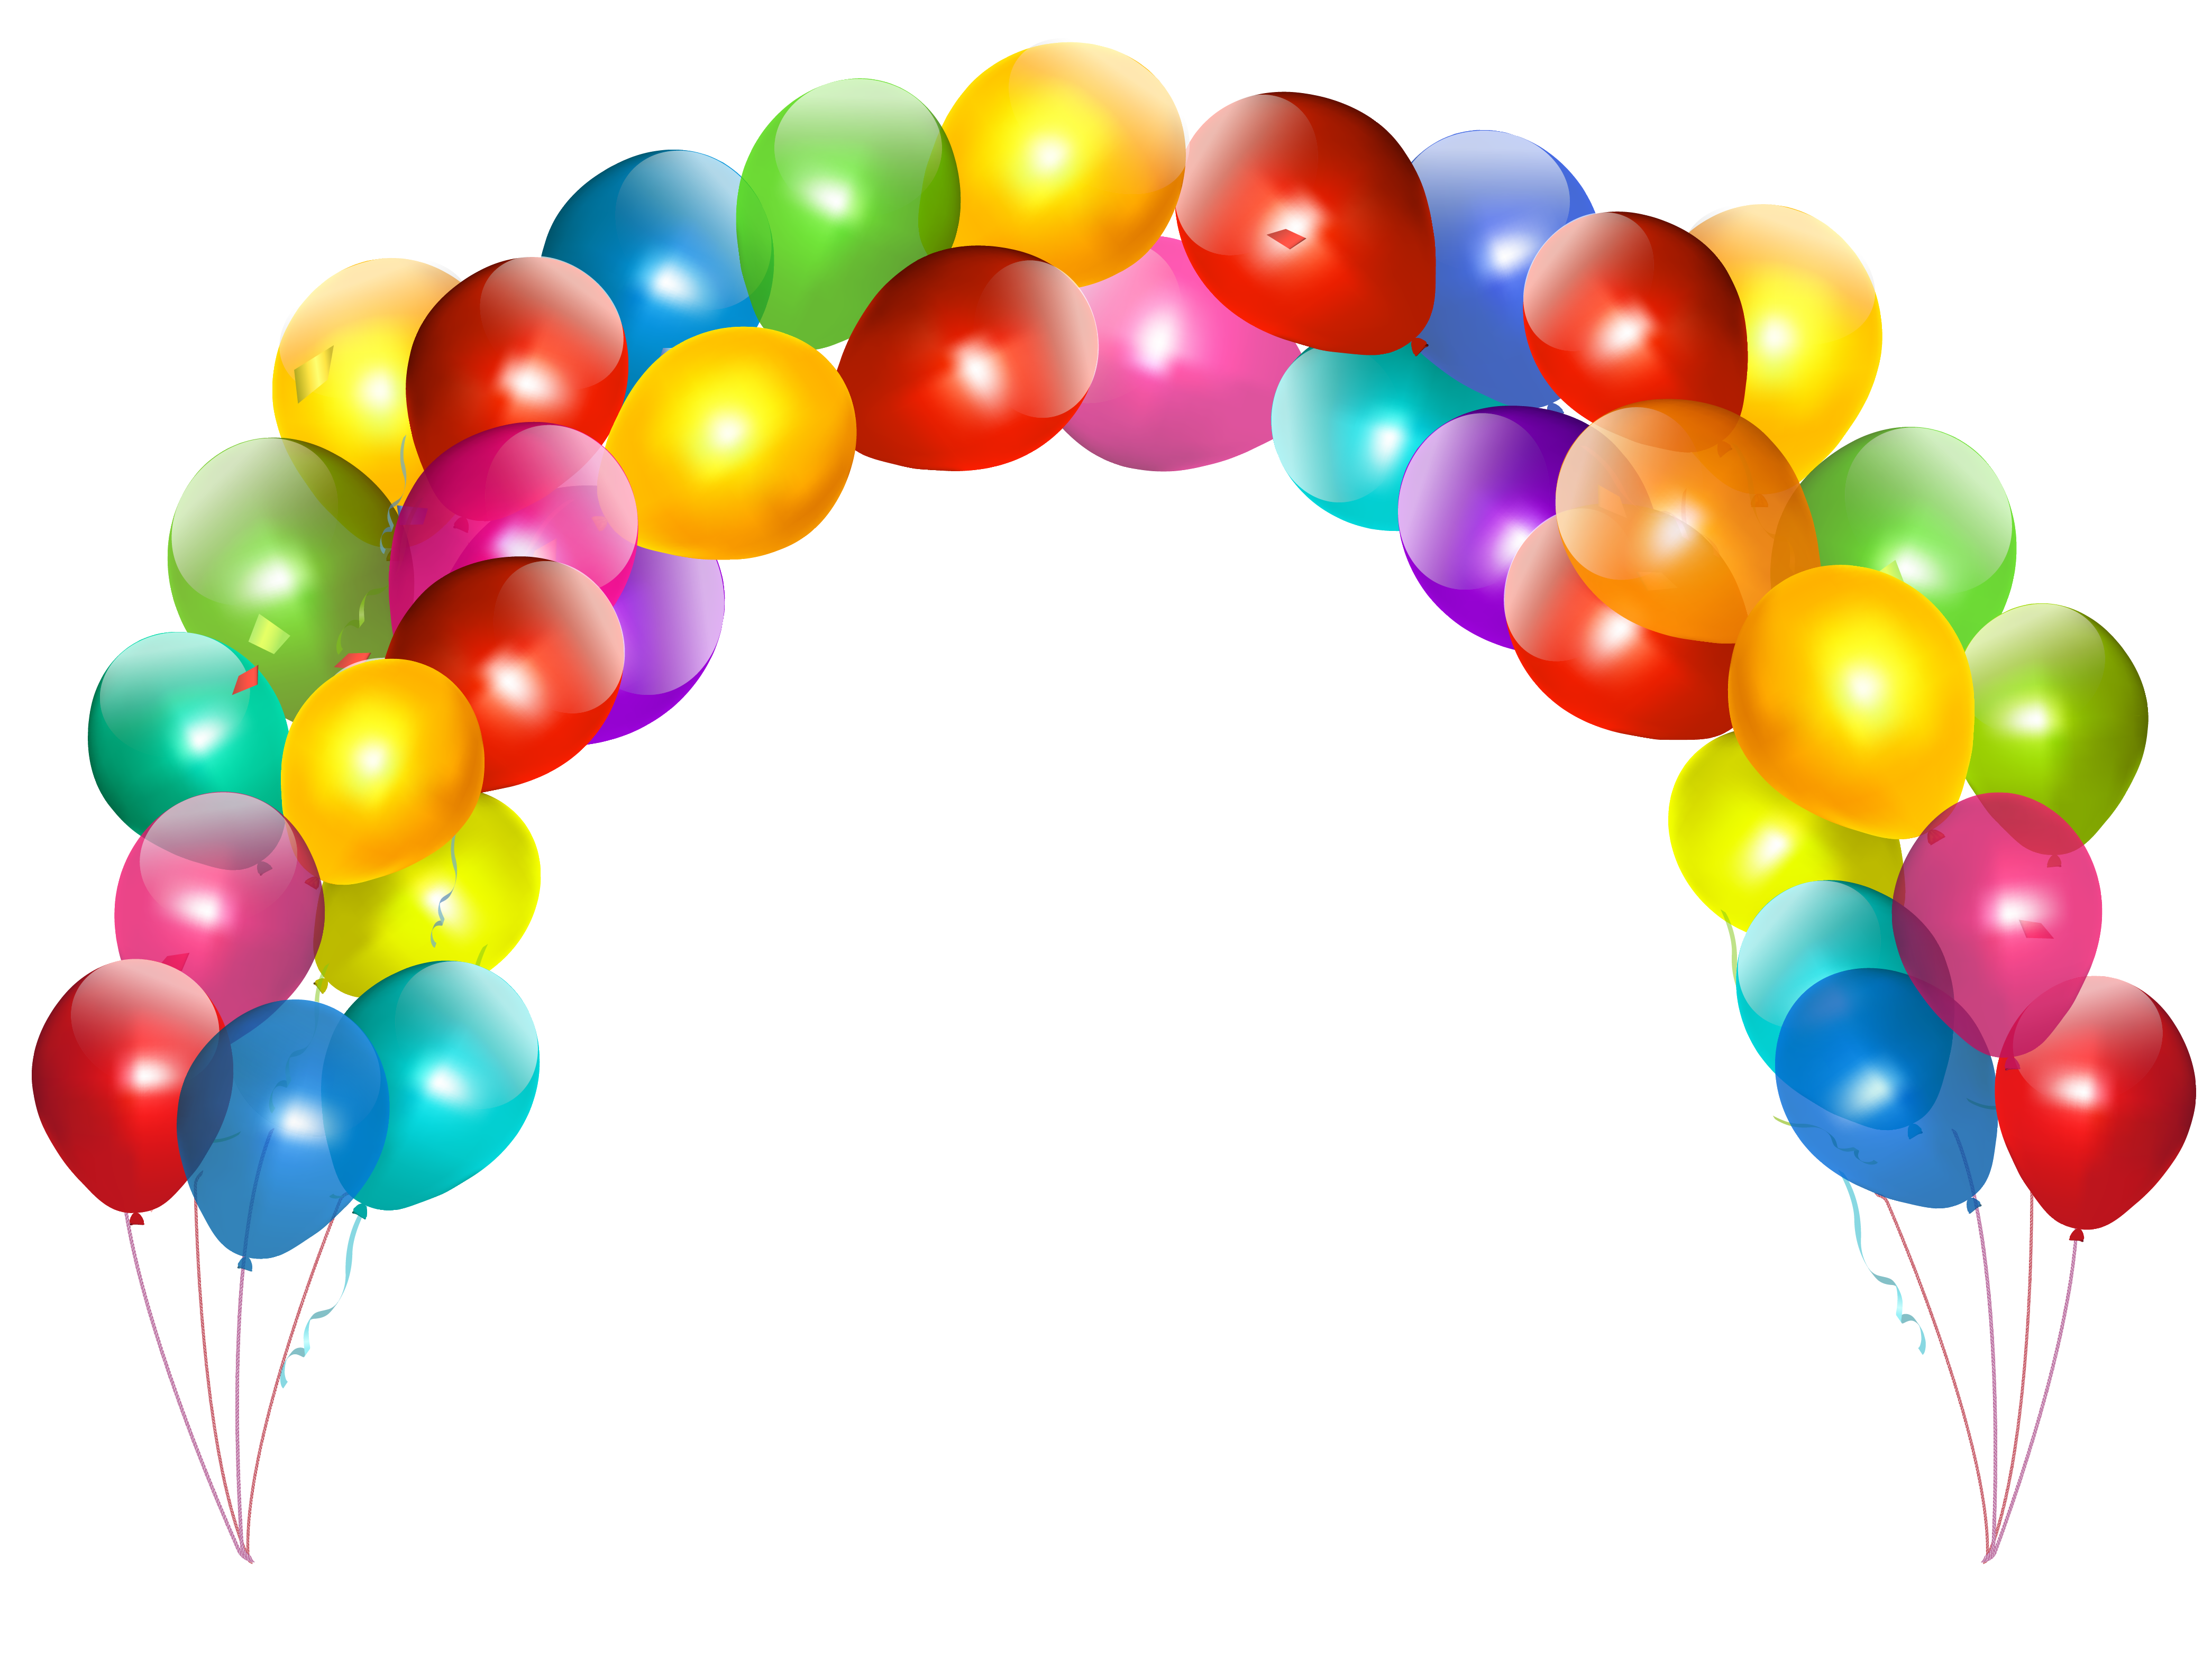 Star balloons clipart clipart transparent library Balloon Arch Clipart | All types of Balloons | Pinterest | Arch ... clipart transparent library